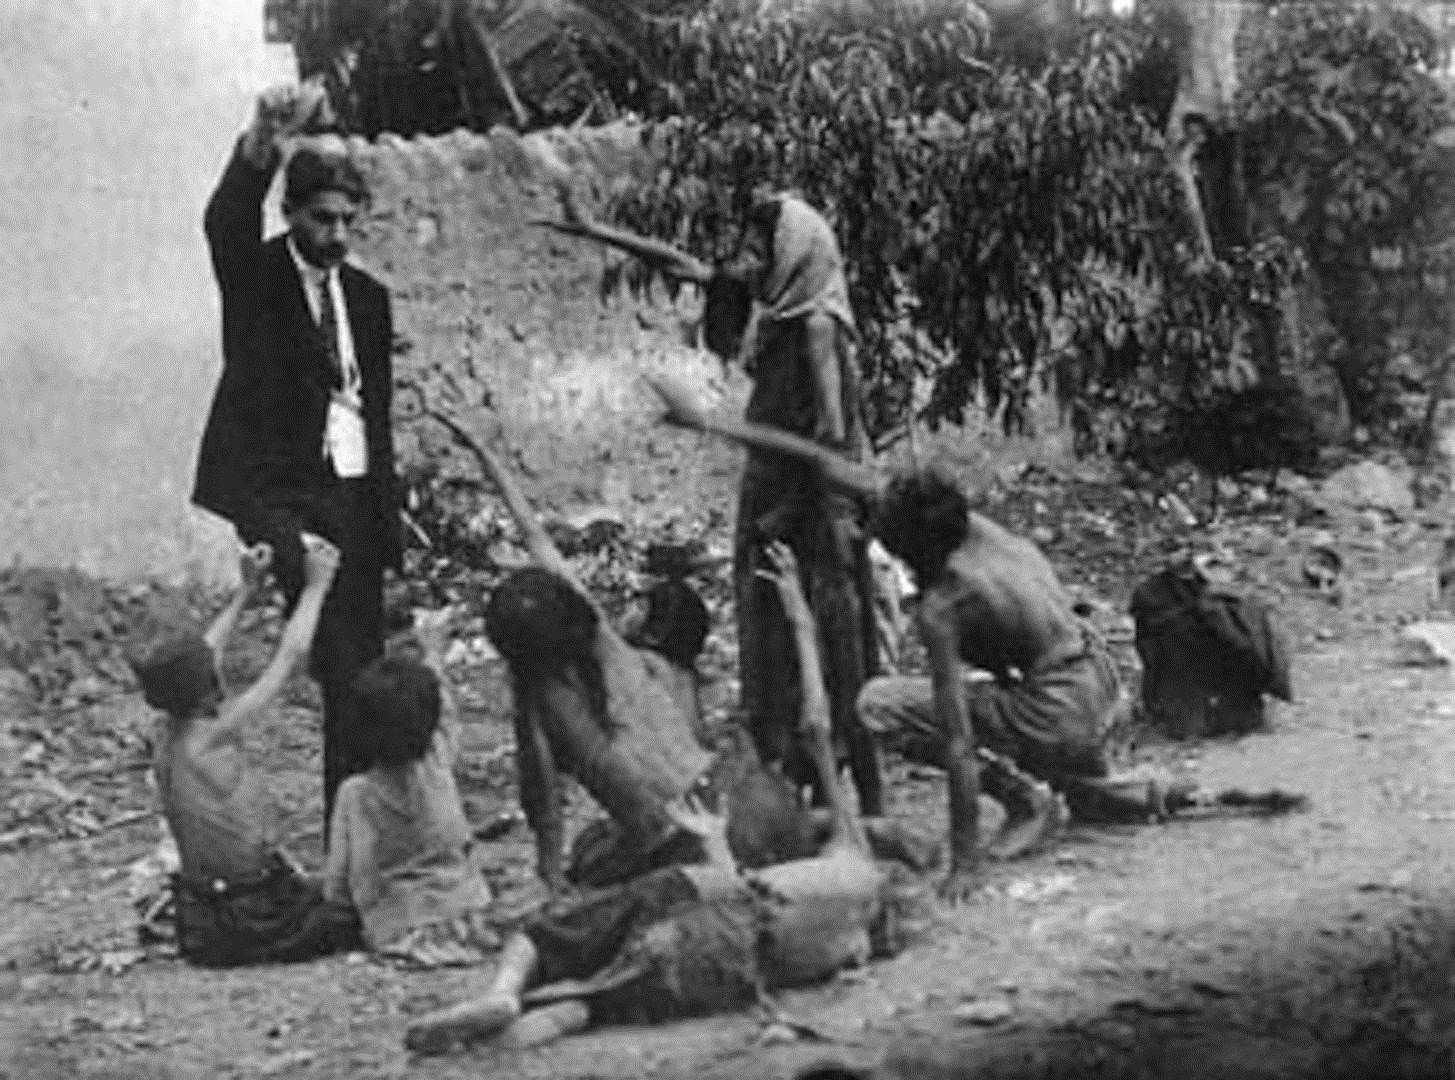 A Turkish official teases starving Armenian orphans with a loaf of bread